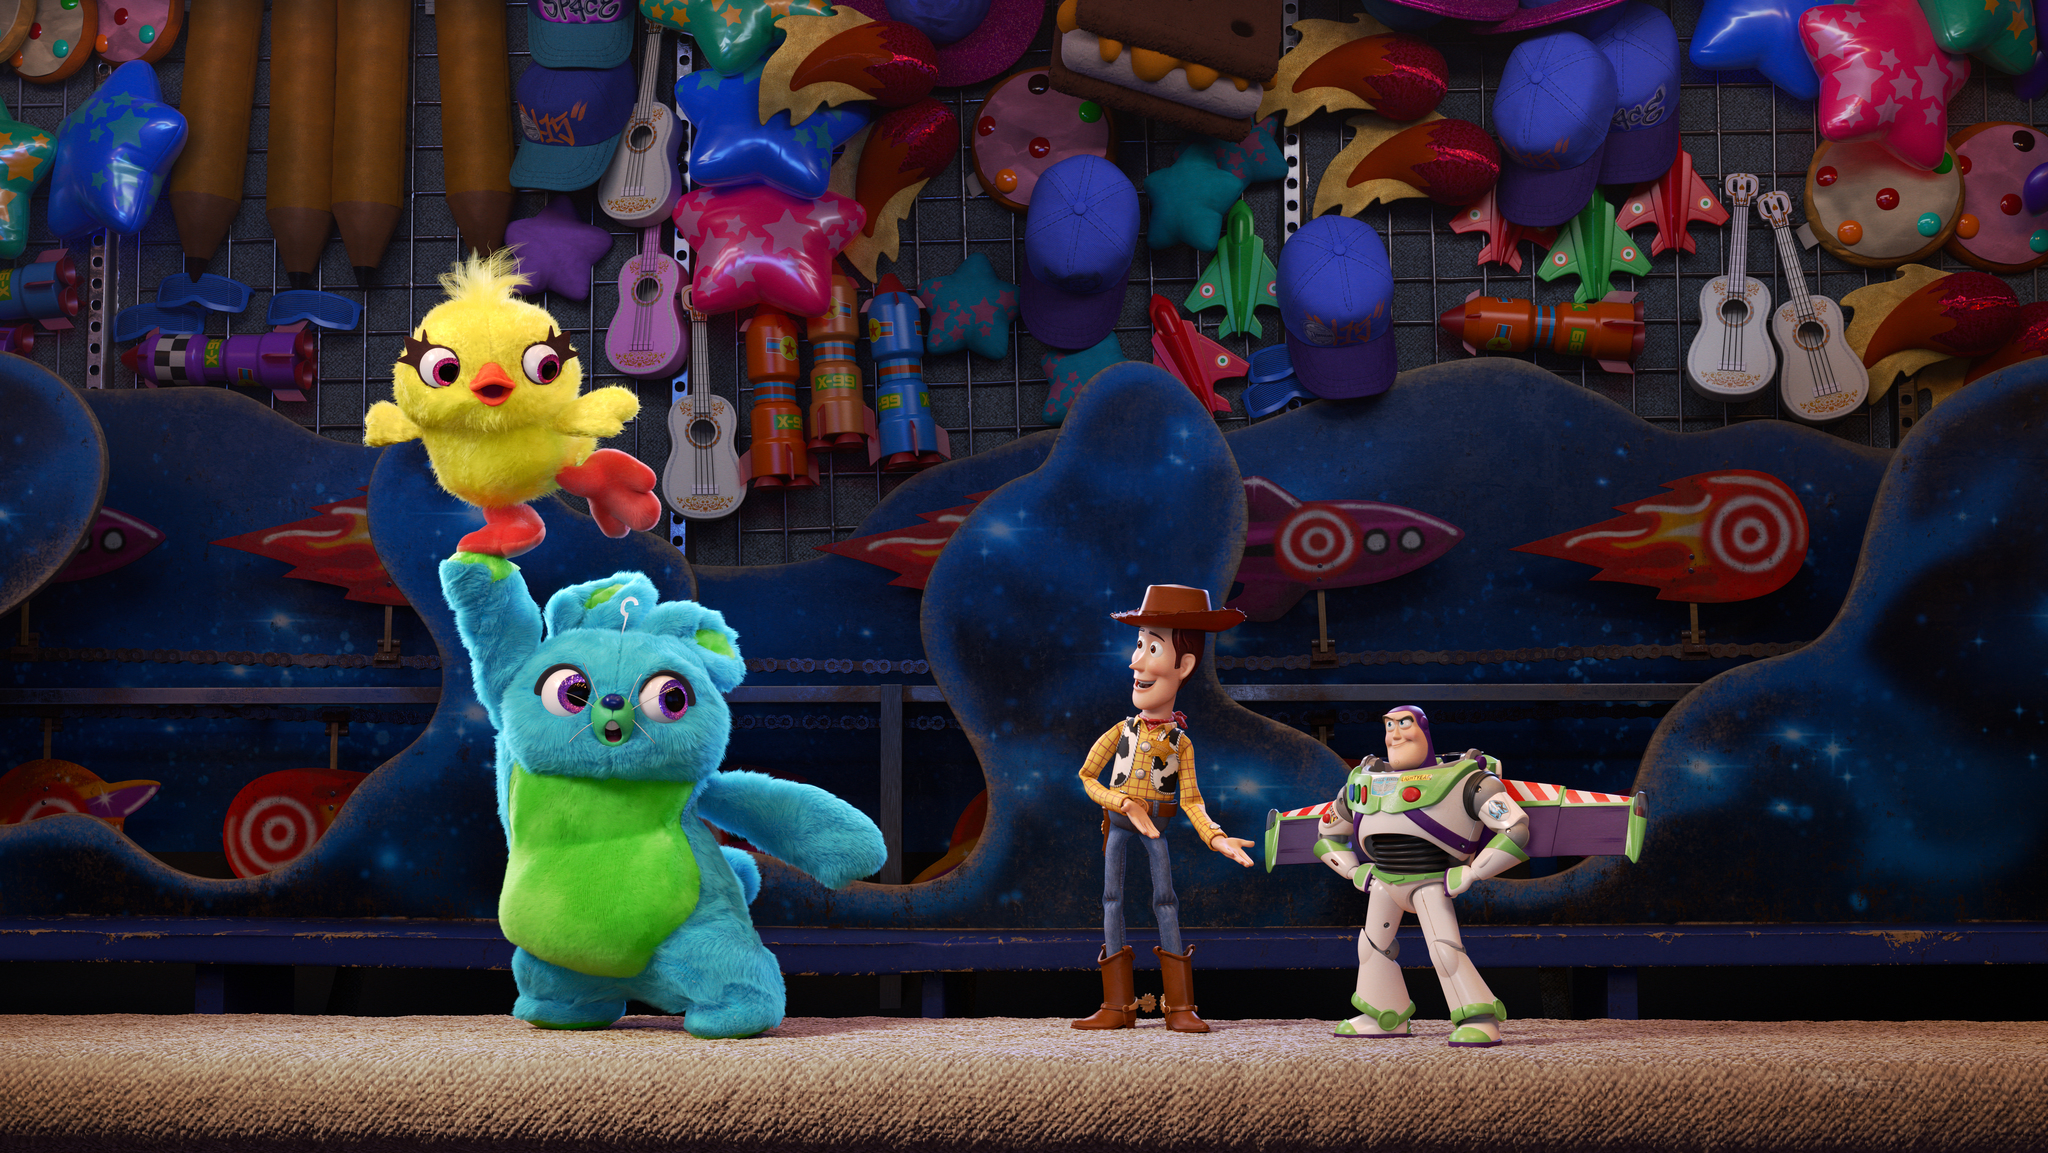 One iconic duo meets another, as Ducky and Bunny are introduced to Woody and Buzz in  Toy Story 4 .